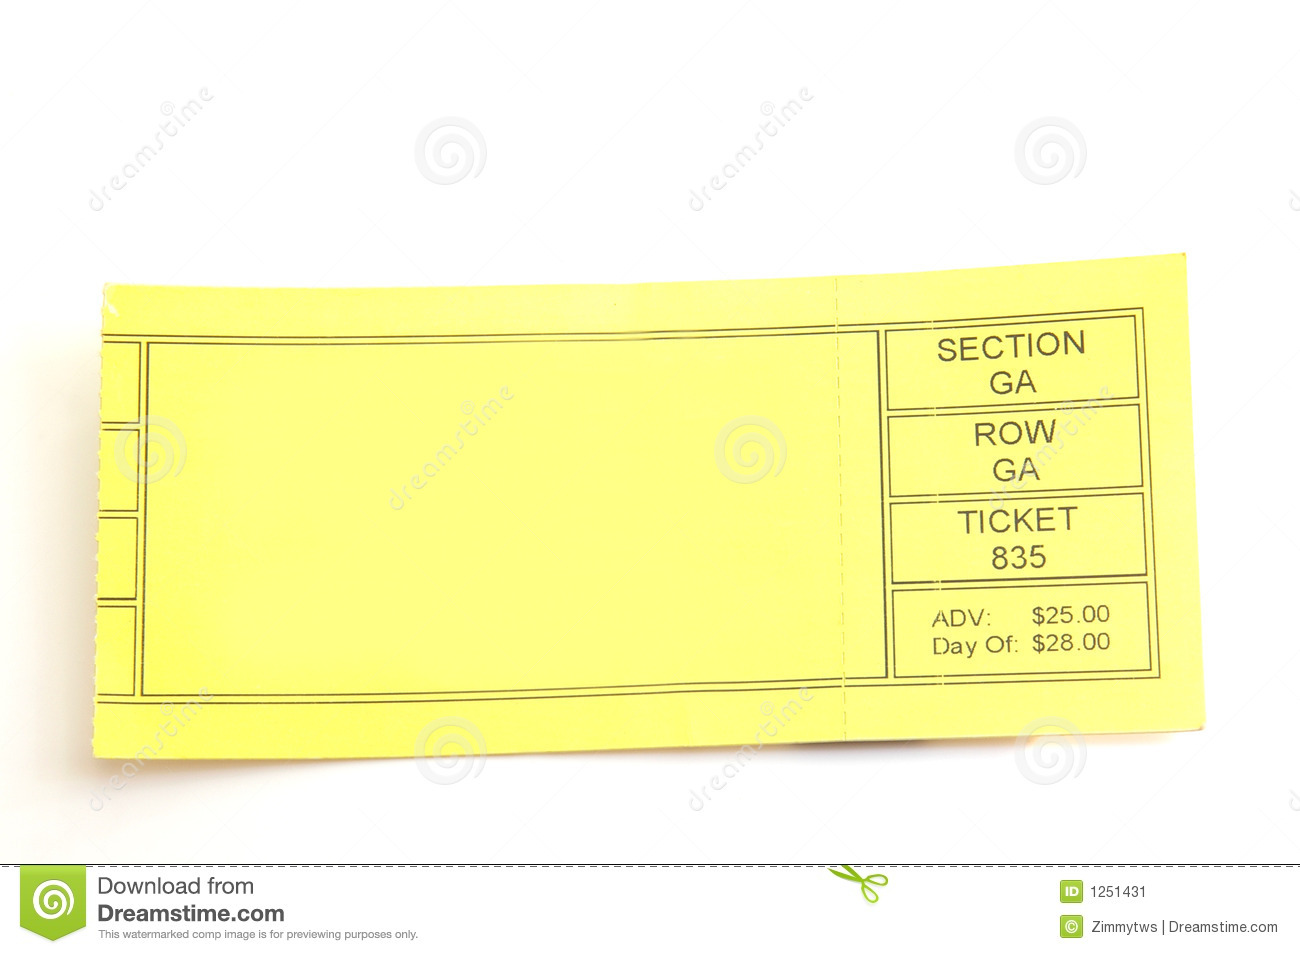 Blank Ticket Stock Image Image Of Ticket Purchase Commerce 1251431